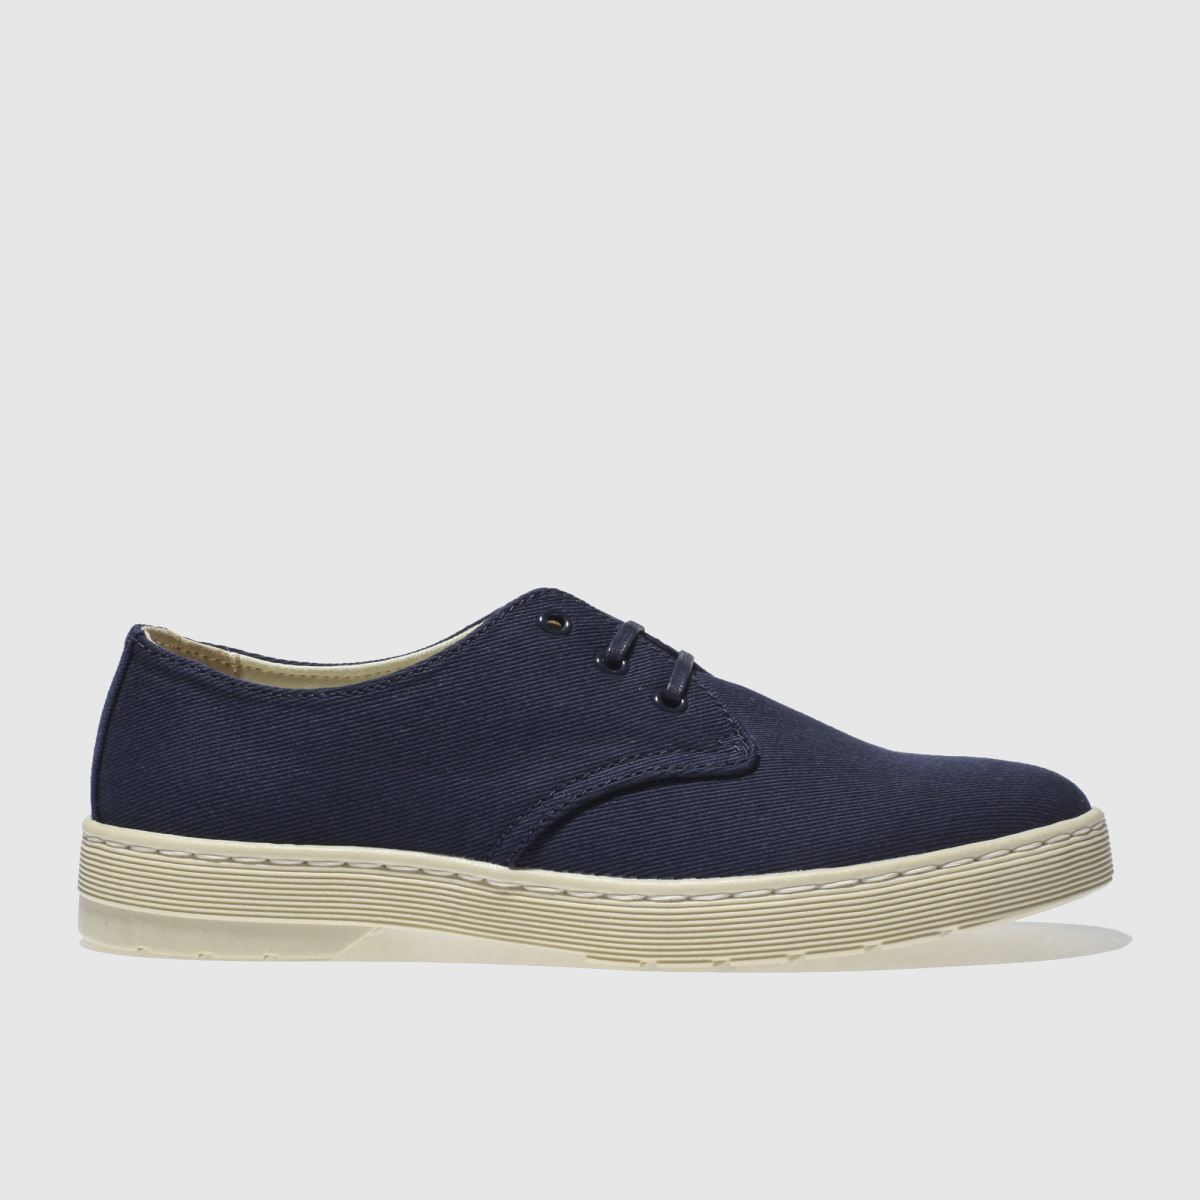 Dr Martens Navy Delray Shoes